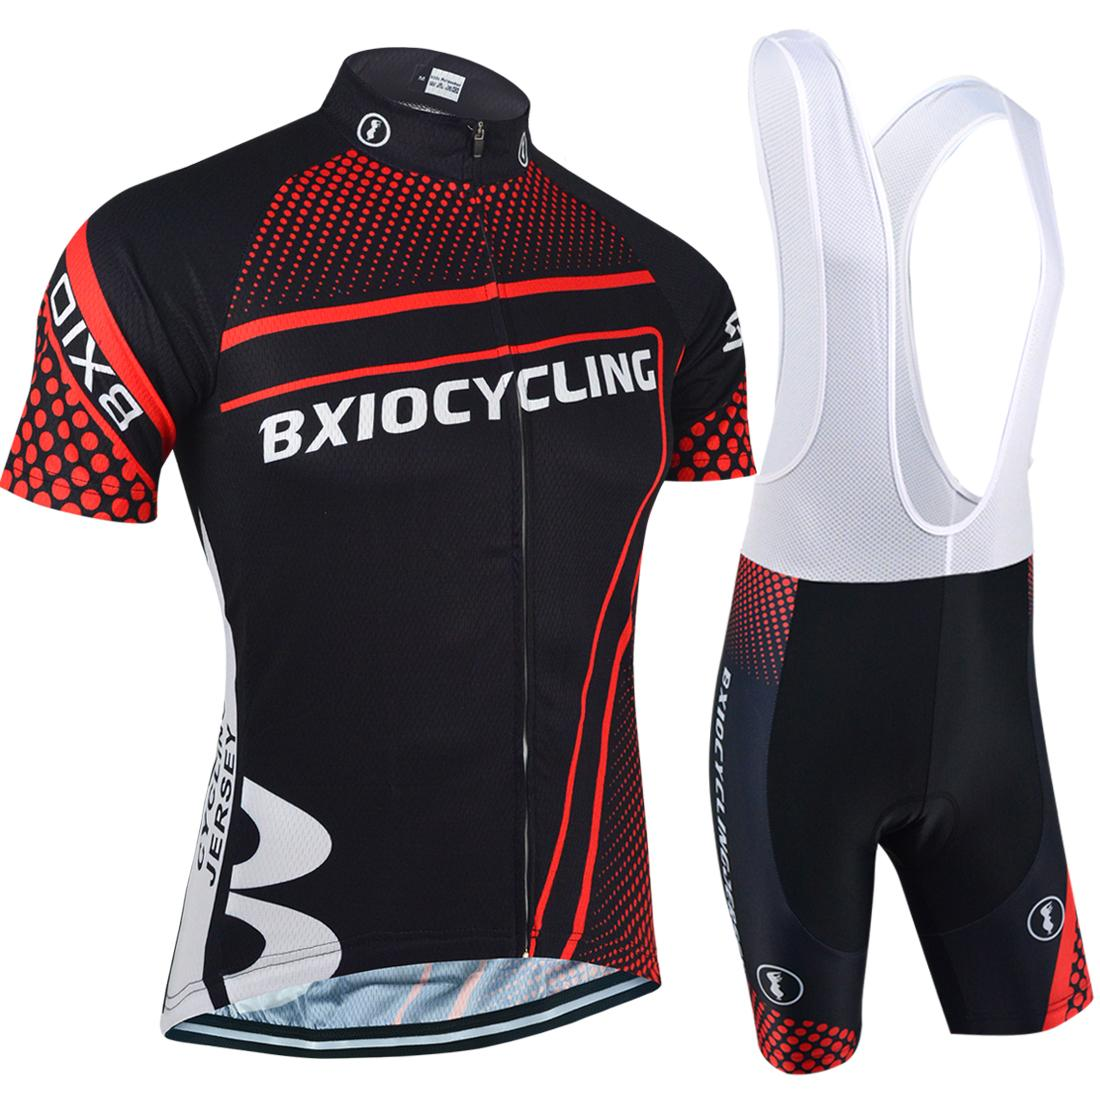 56e7244acc1 BXIO Cycling Clothes China Promotion Item Short Sleeve Sets Summer Zipper Sport  Cycling Jerseys Popular Recommended Cycling Clothing BX 087 Castelli Bib ...